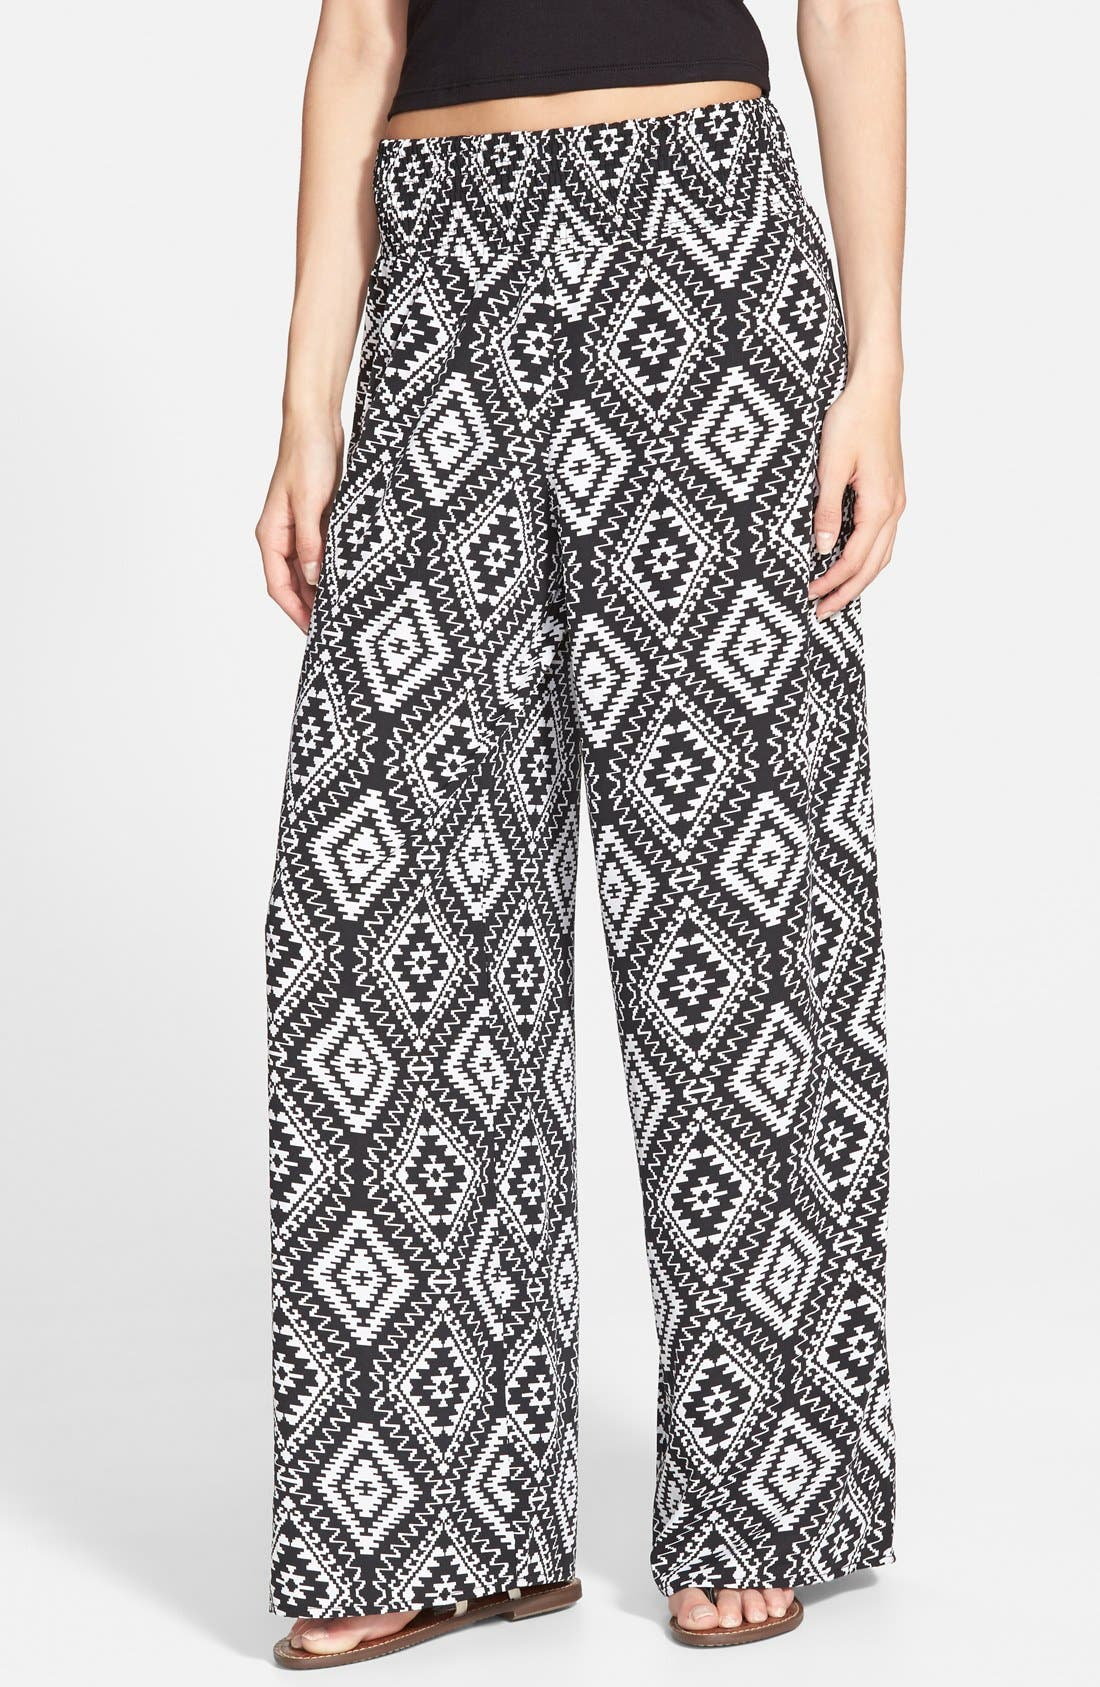 Main Image - Zoe and Rose Print Smocked Waist Palazzo Pants